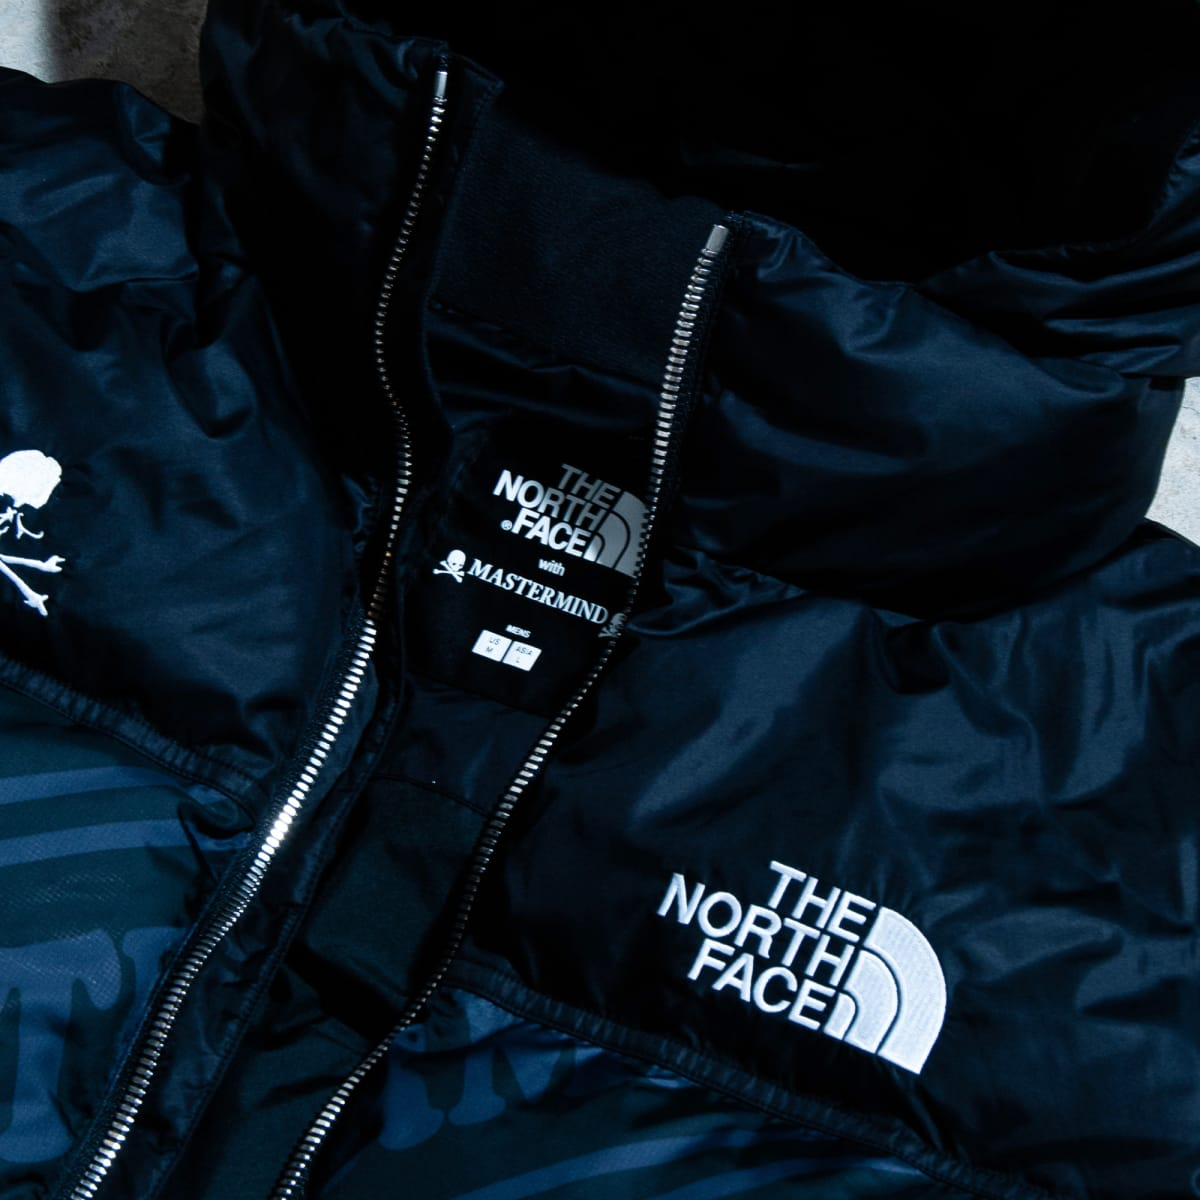 Arcobaleno Camion battuto oro  The mastermind WORLD x The North Face Collection Will Be Extremely Limited  - Freshness Mag